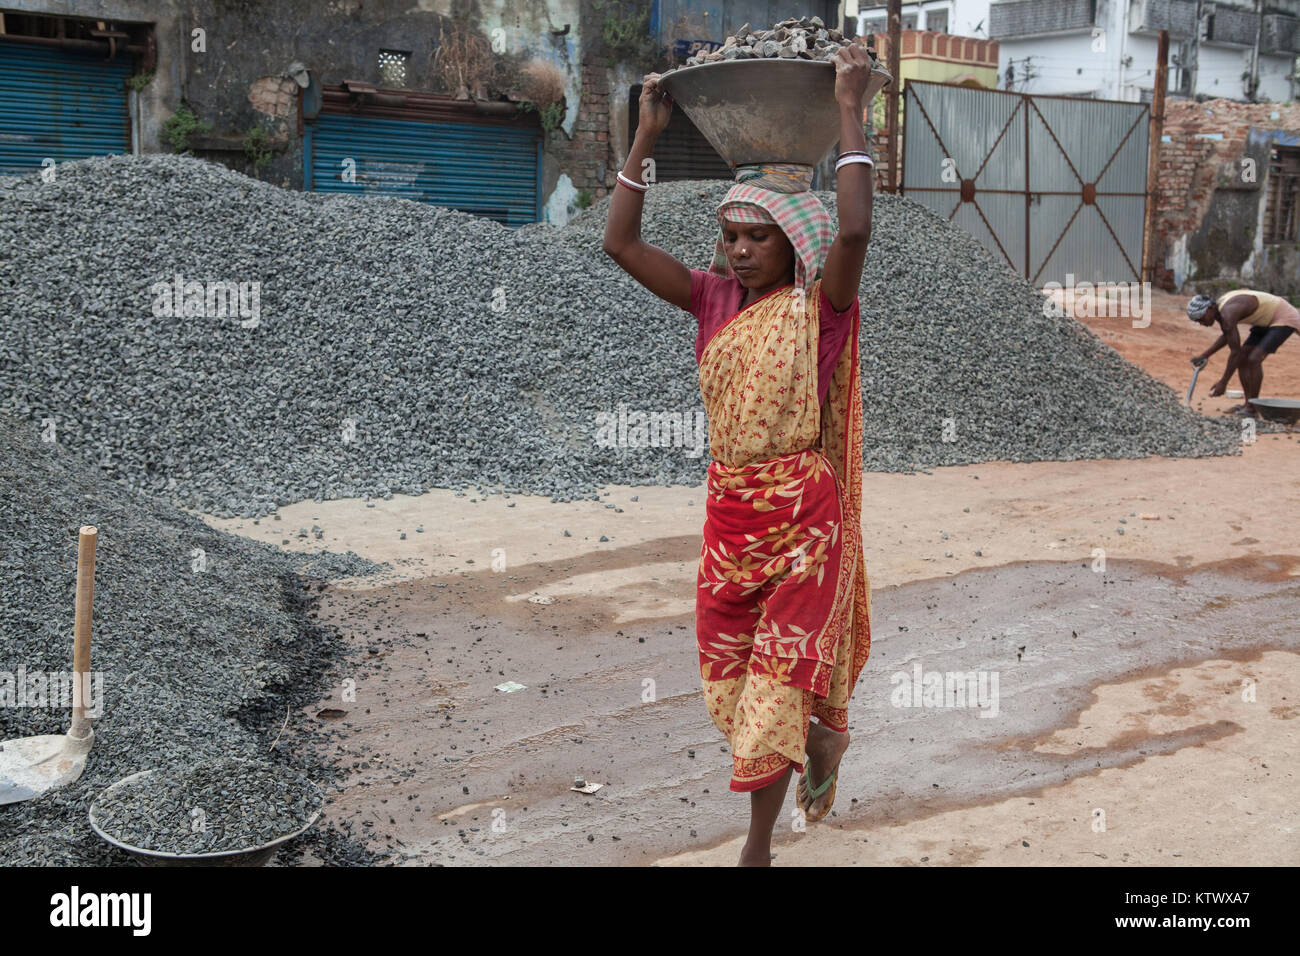 A female labourer carries a tray of stone chippings through a building site in Asansol, India Stock Photo